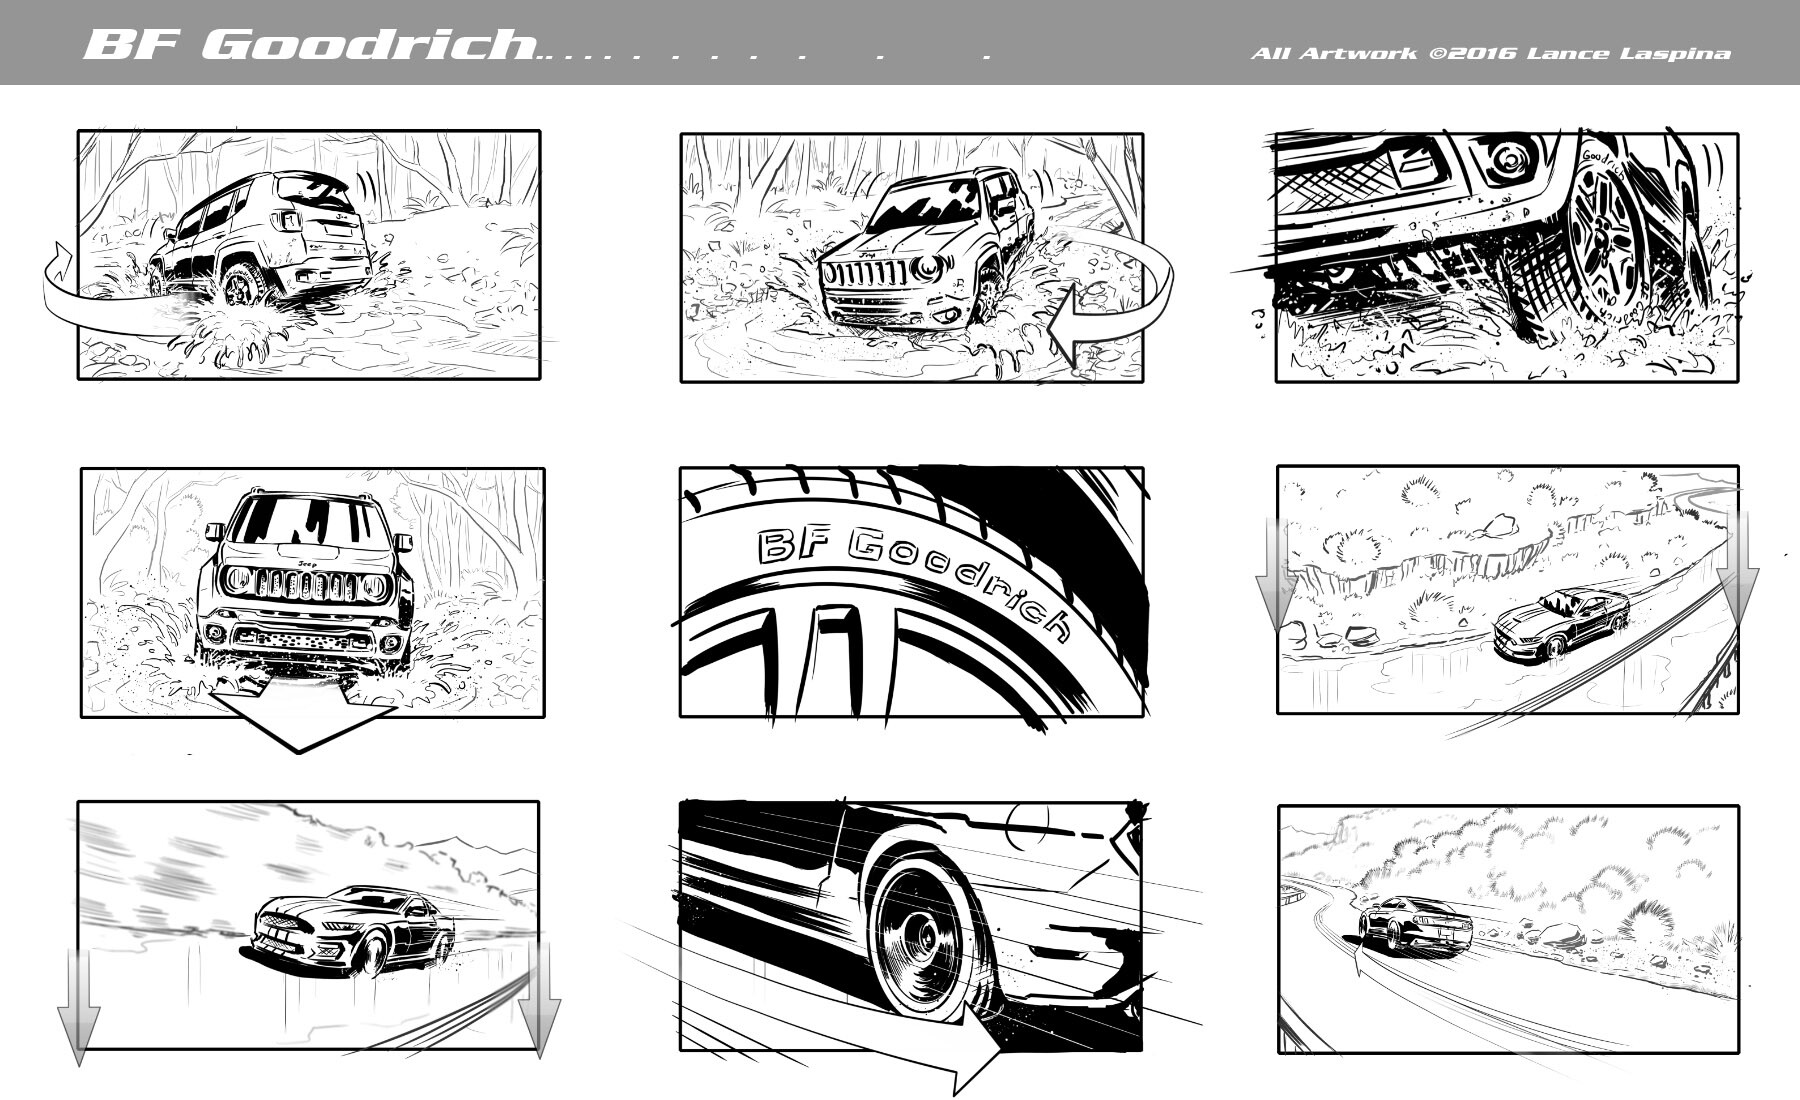 Lance laspina as storyboardsamples 05